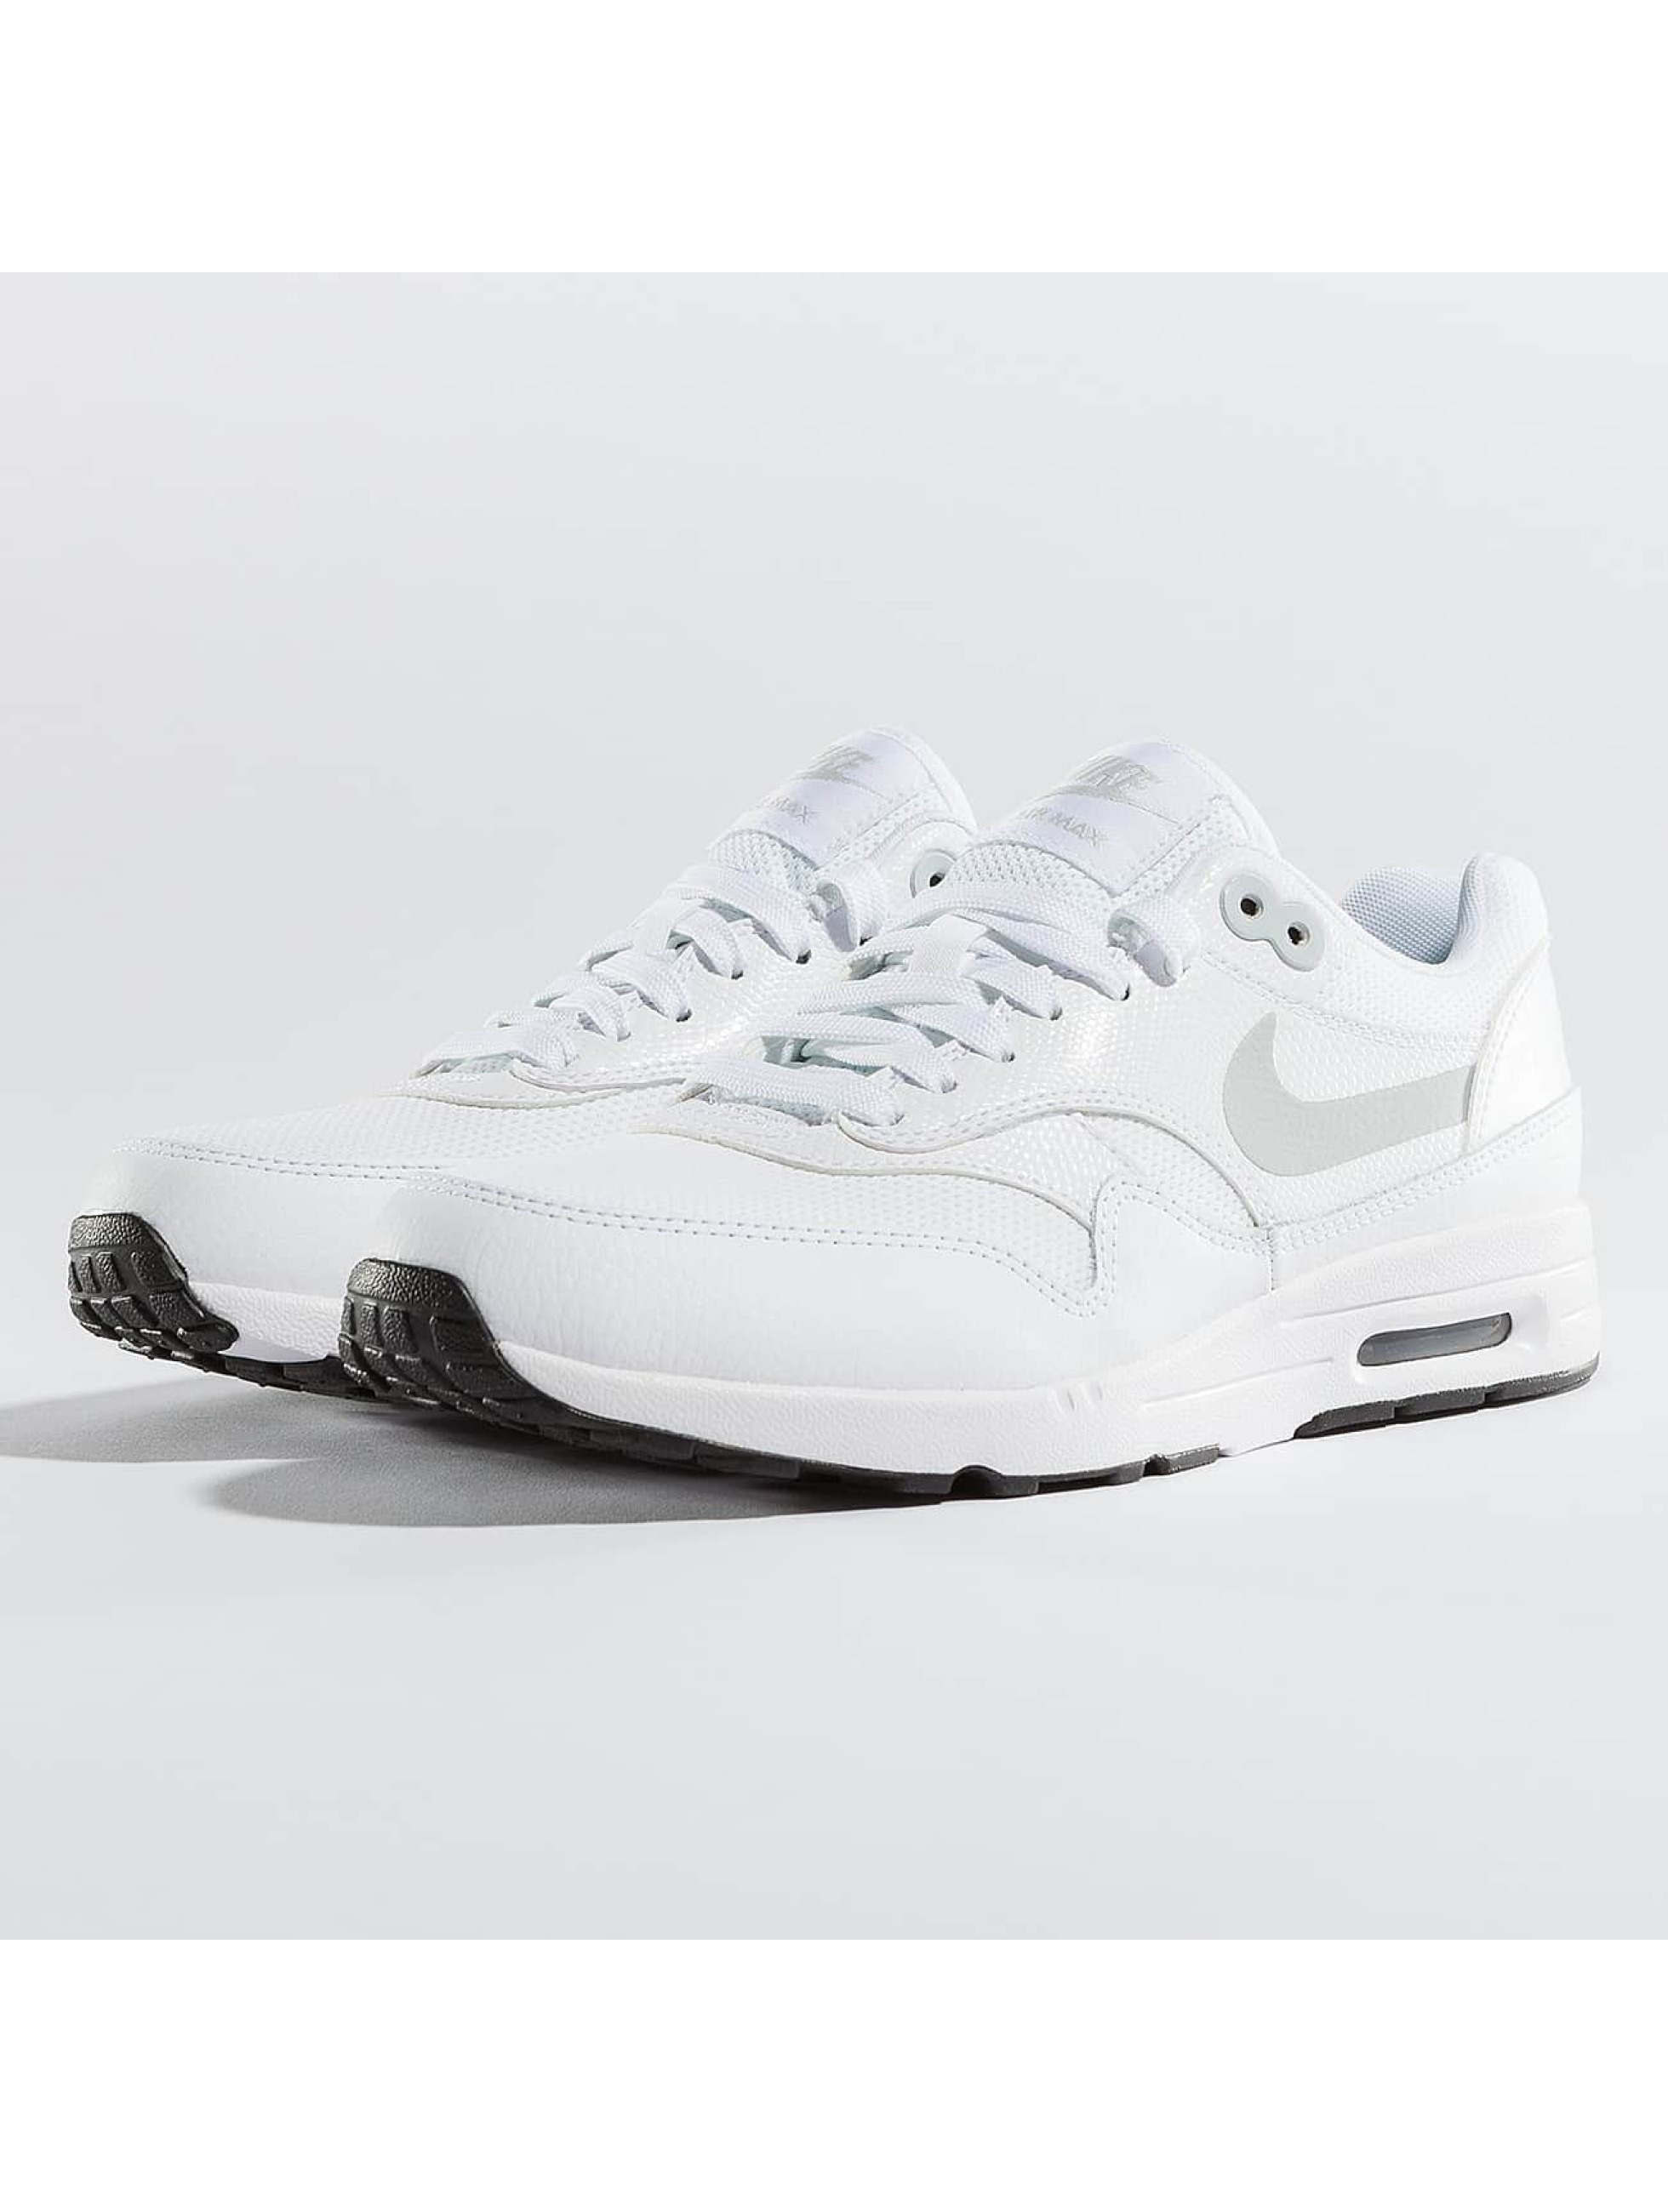 Nike Sneakers Women's Air Max 1 Ultra 2.0 white